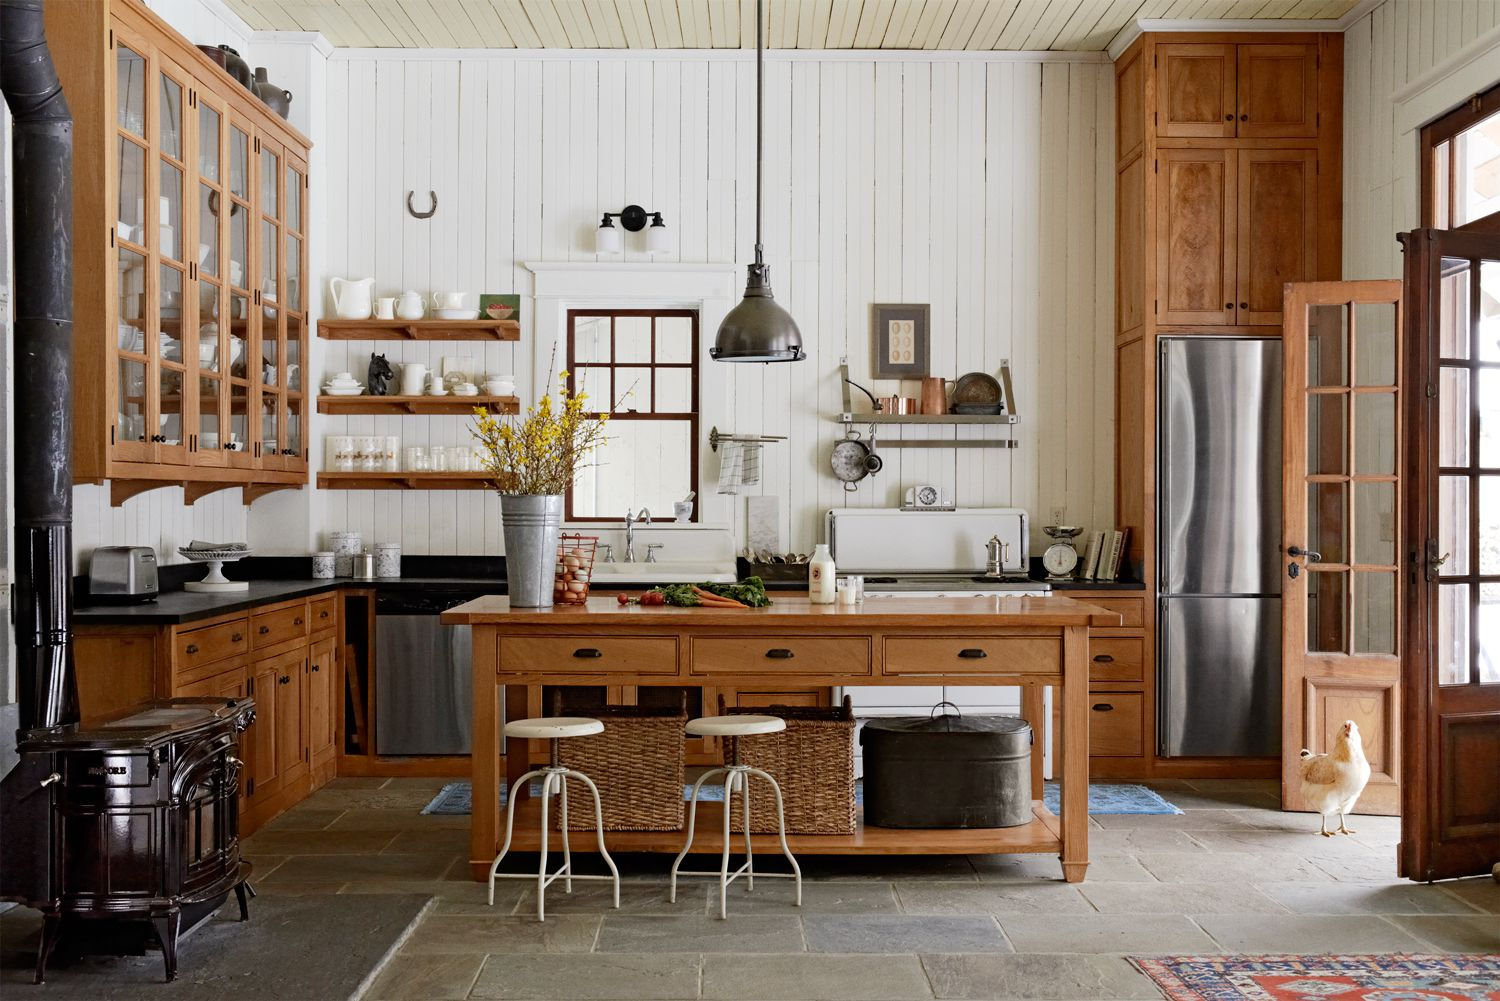 Combine Wooden Island and Round Metal Stools inside Old Fashioned Kitchen Decor Ideas with White Backsplash